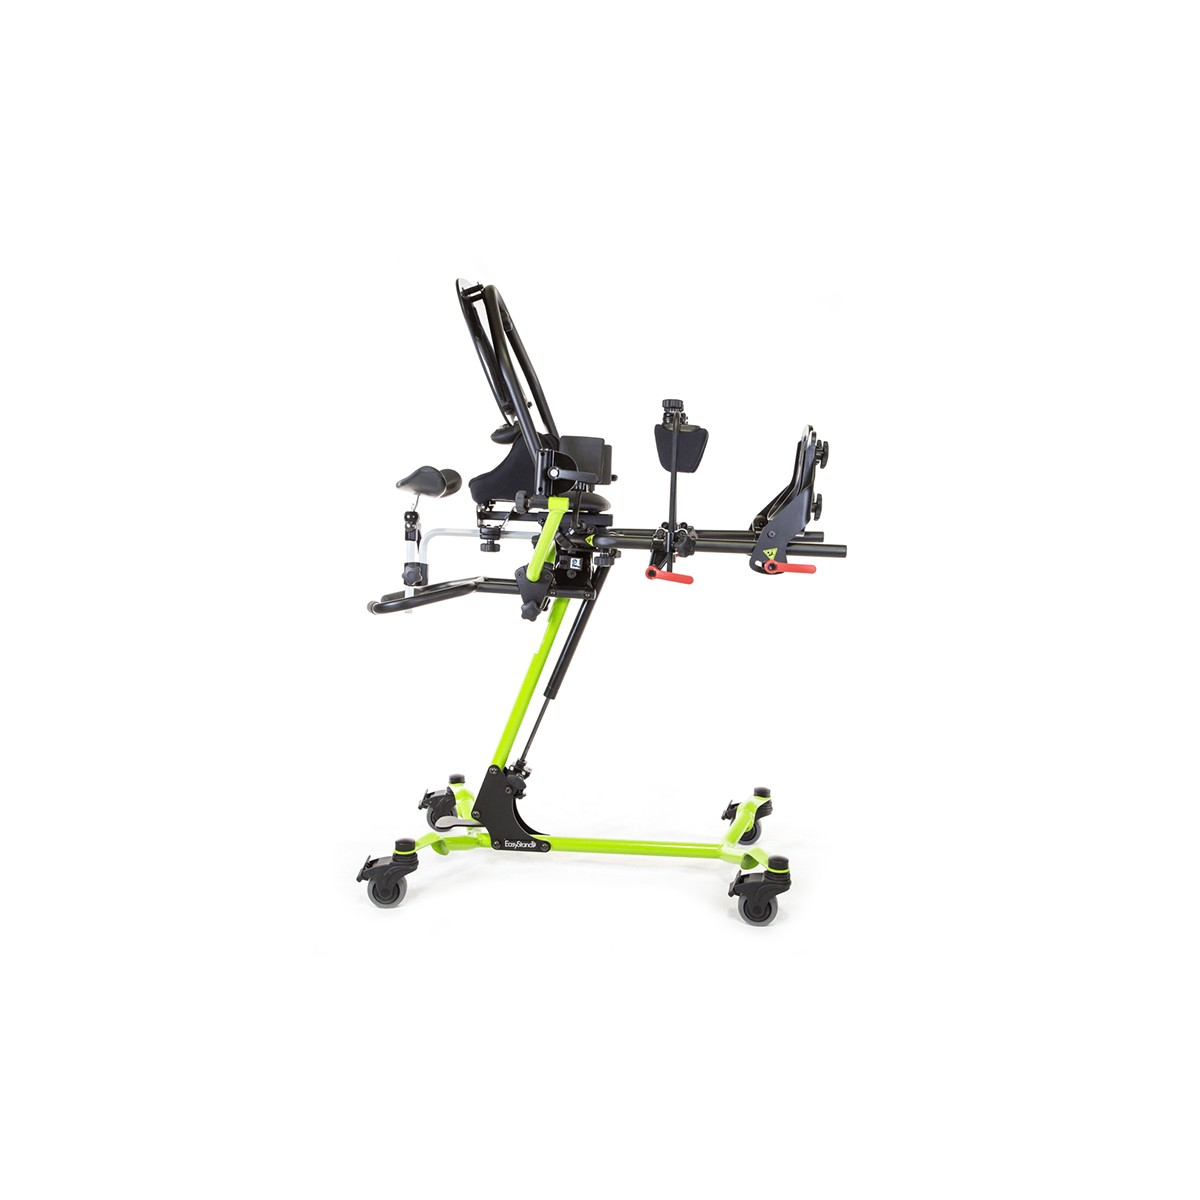 Side view of Green EasyStand Zing Supine Size 1